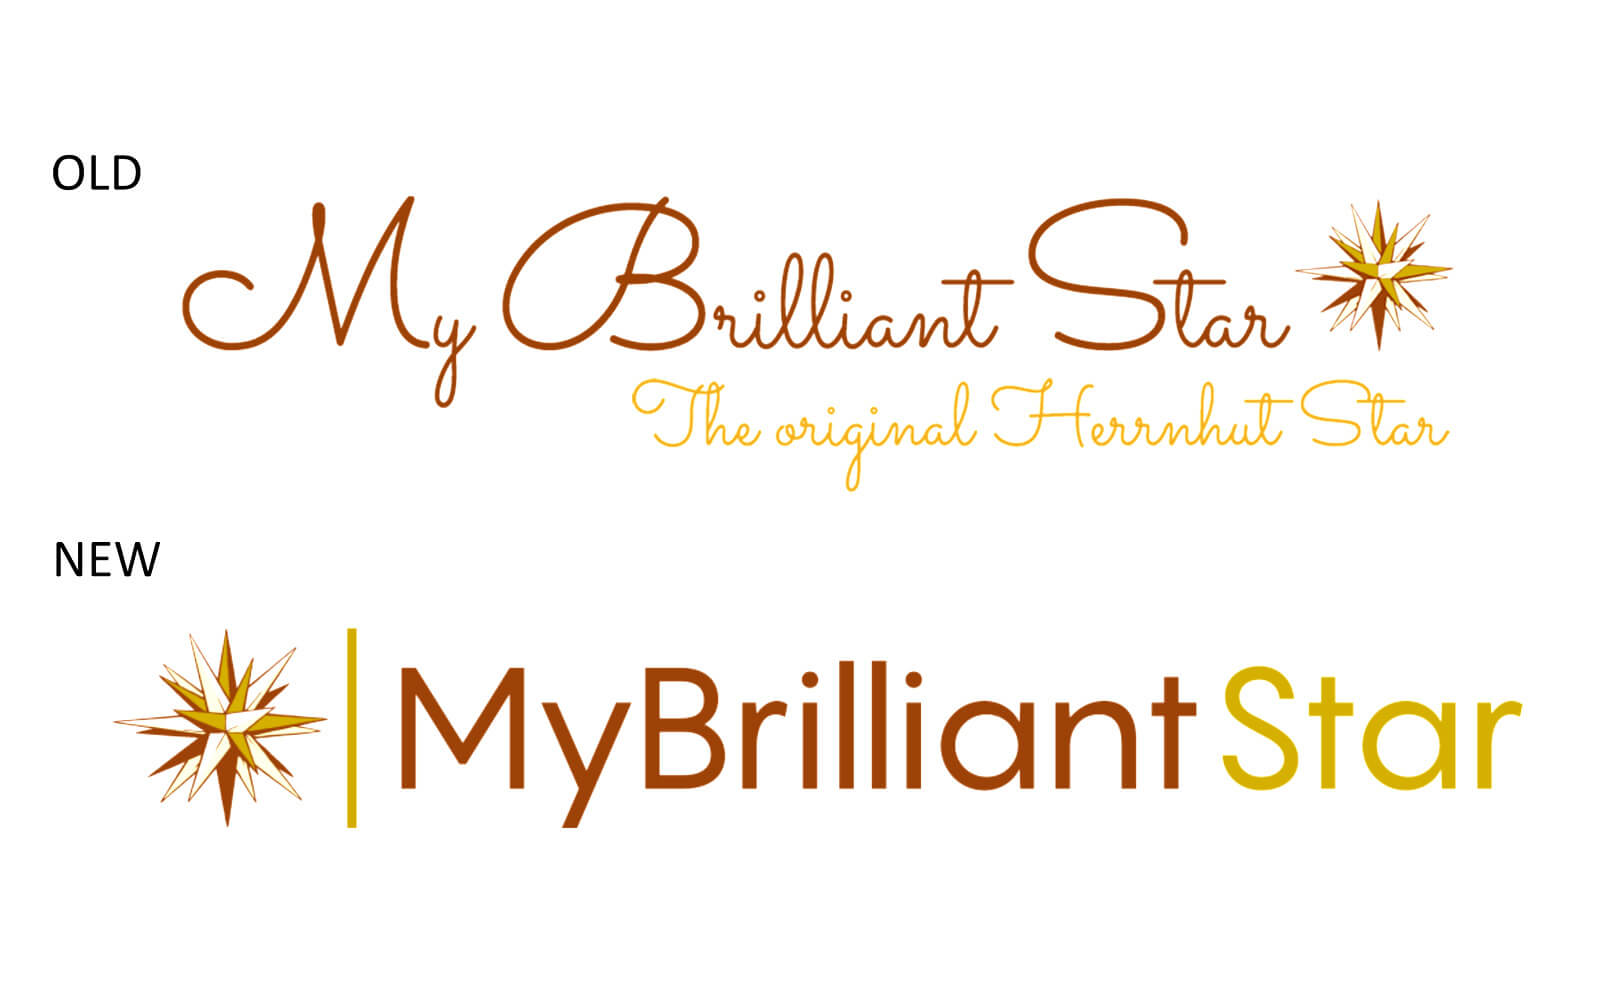 MyBrilliantStar - new logo